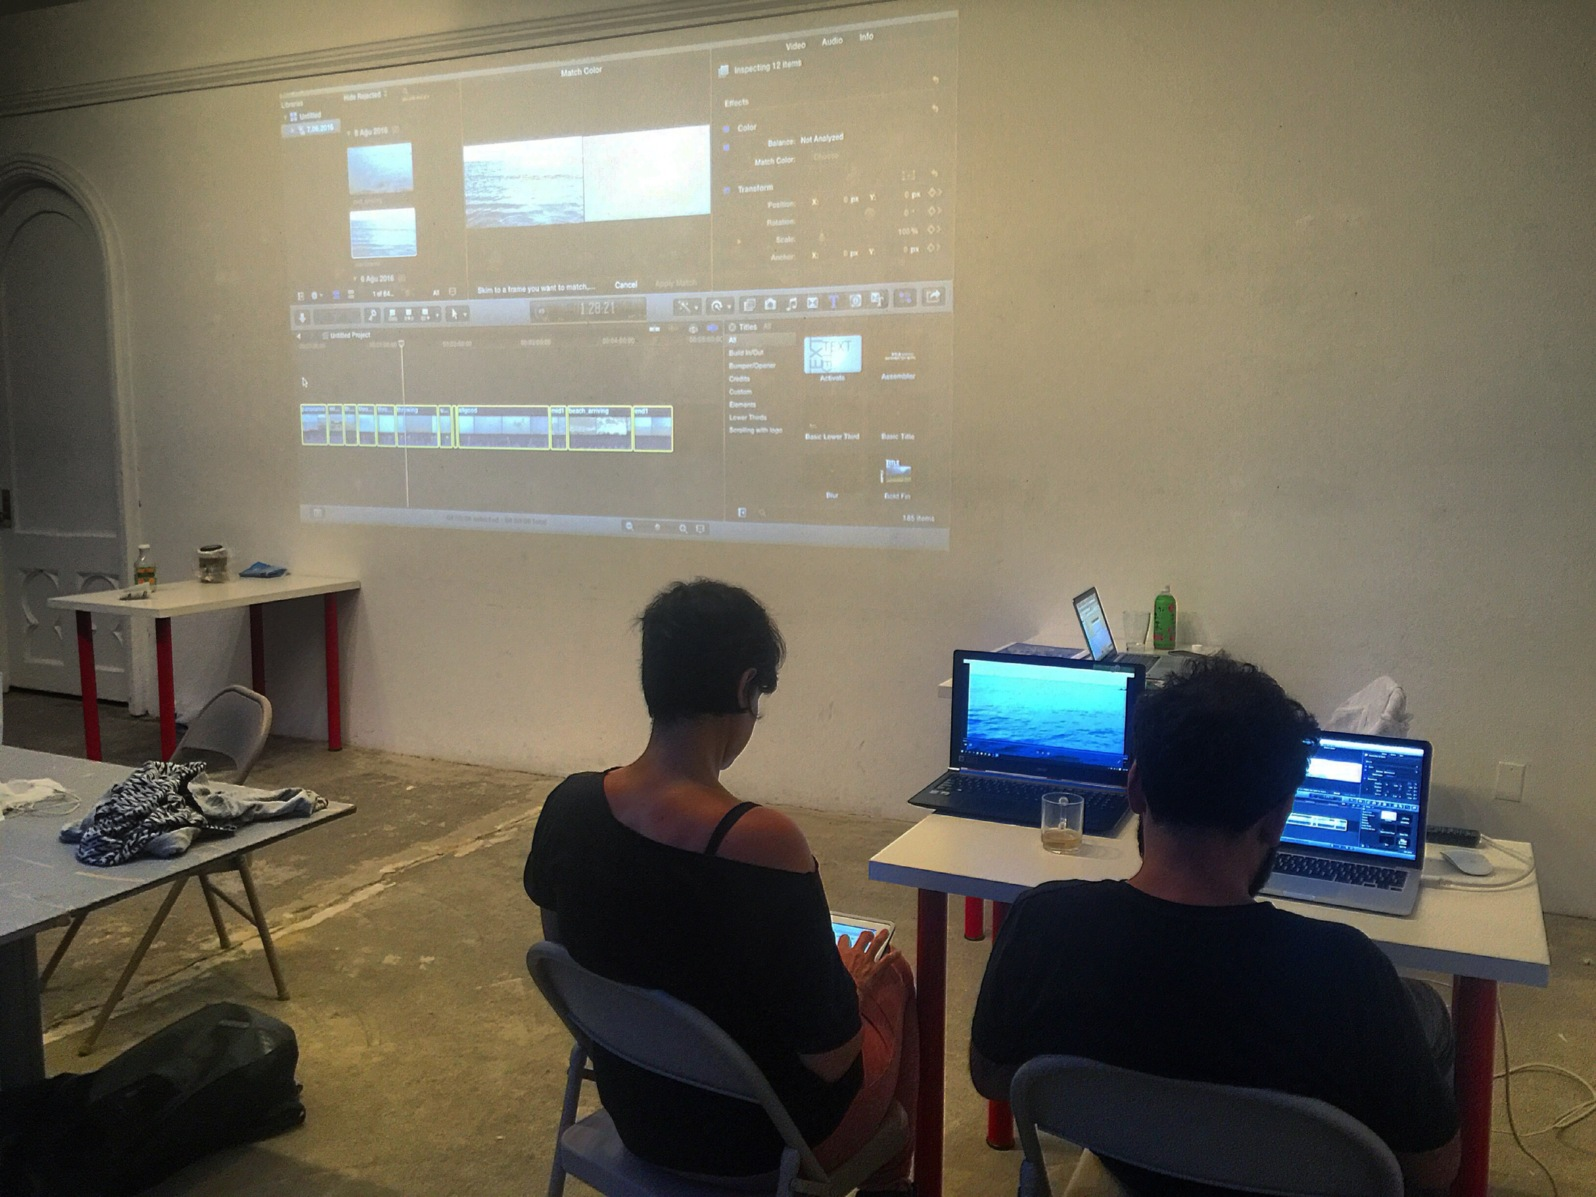 RU Production Support: RU resident artists Zorica Zafirovska and Özgür Demirci working with their video works at the RU Space on August 8, 2016.